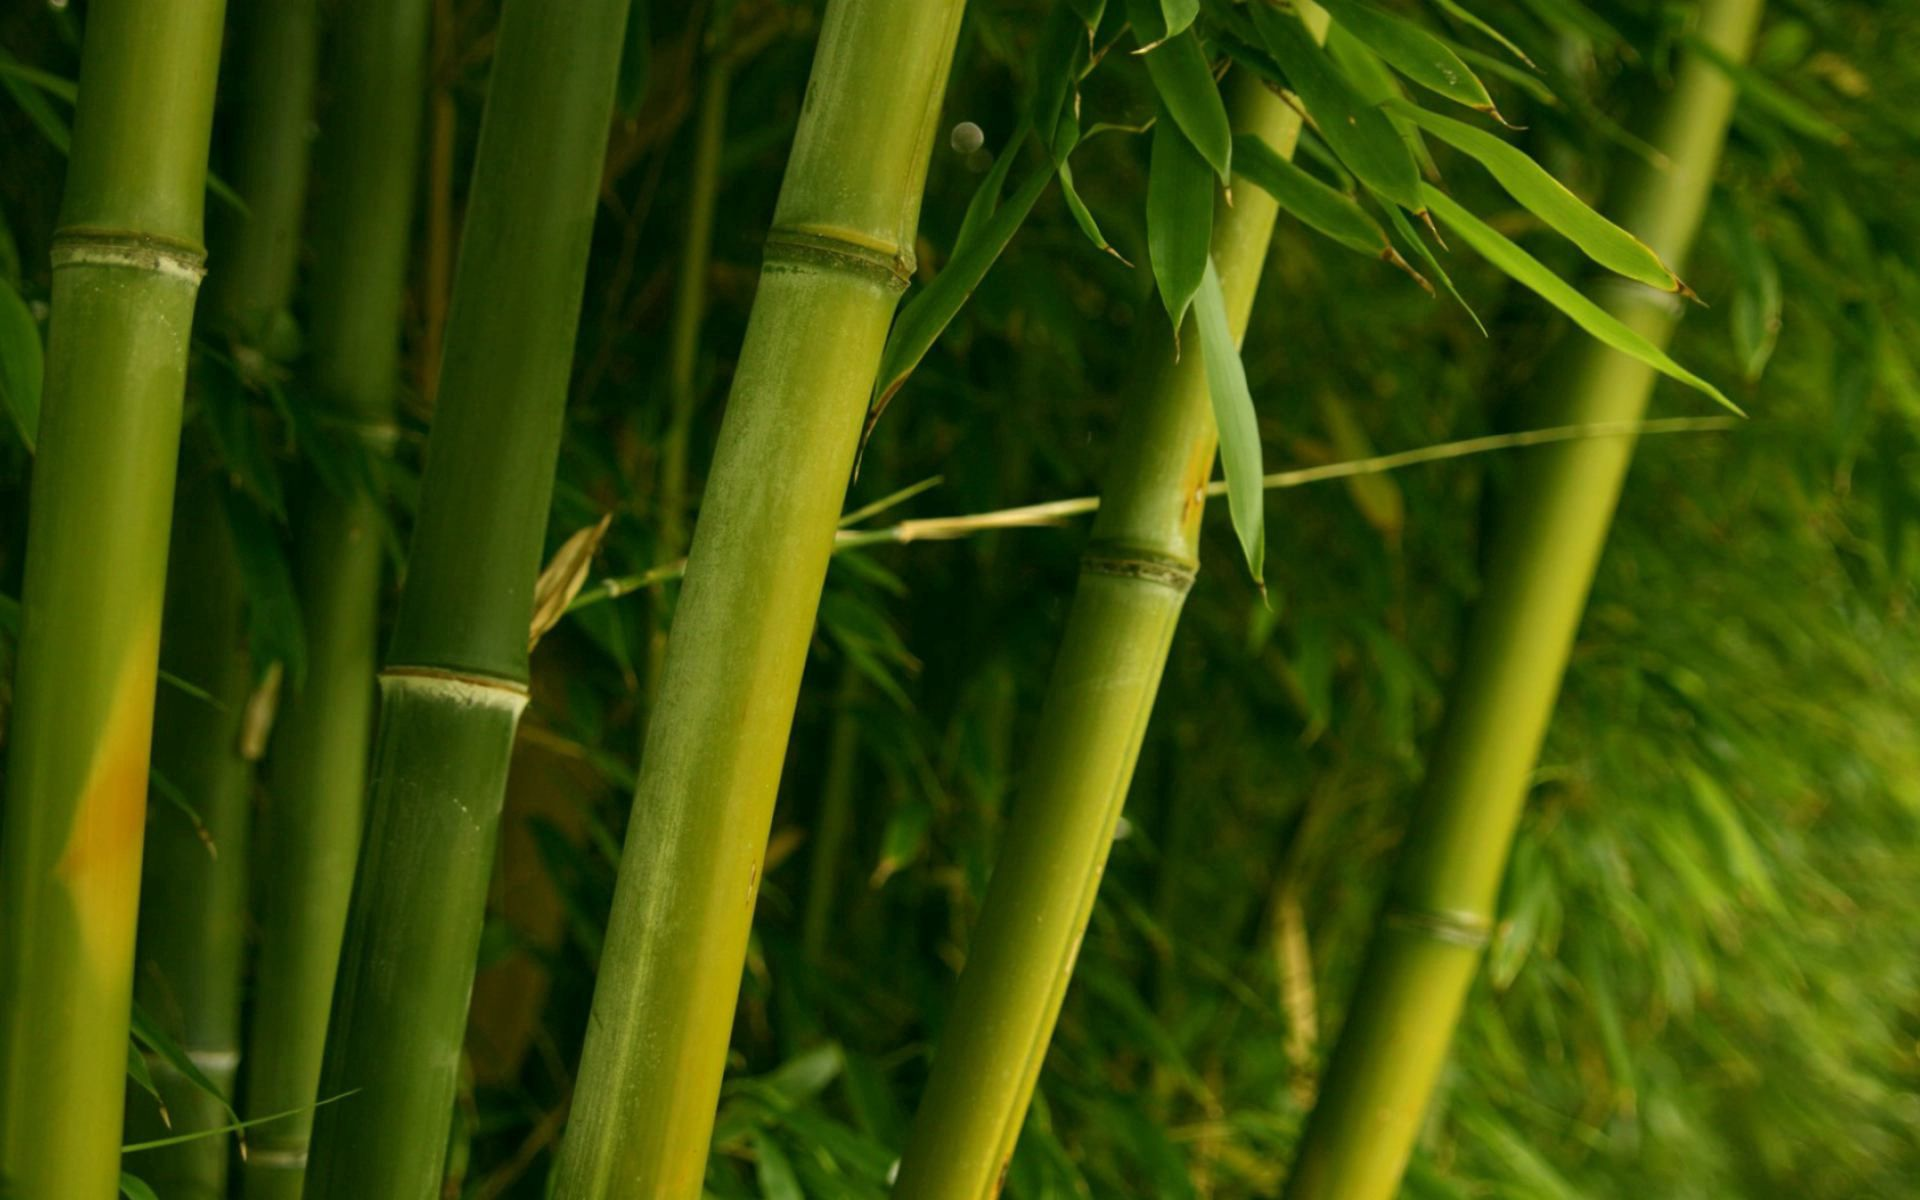 114273 download wallpaper Nature, Bamboo, Stems, Leaves screensavers and pictures for free